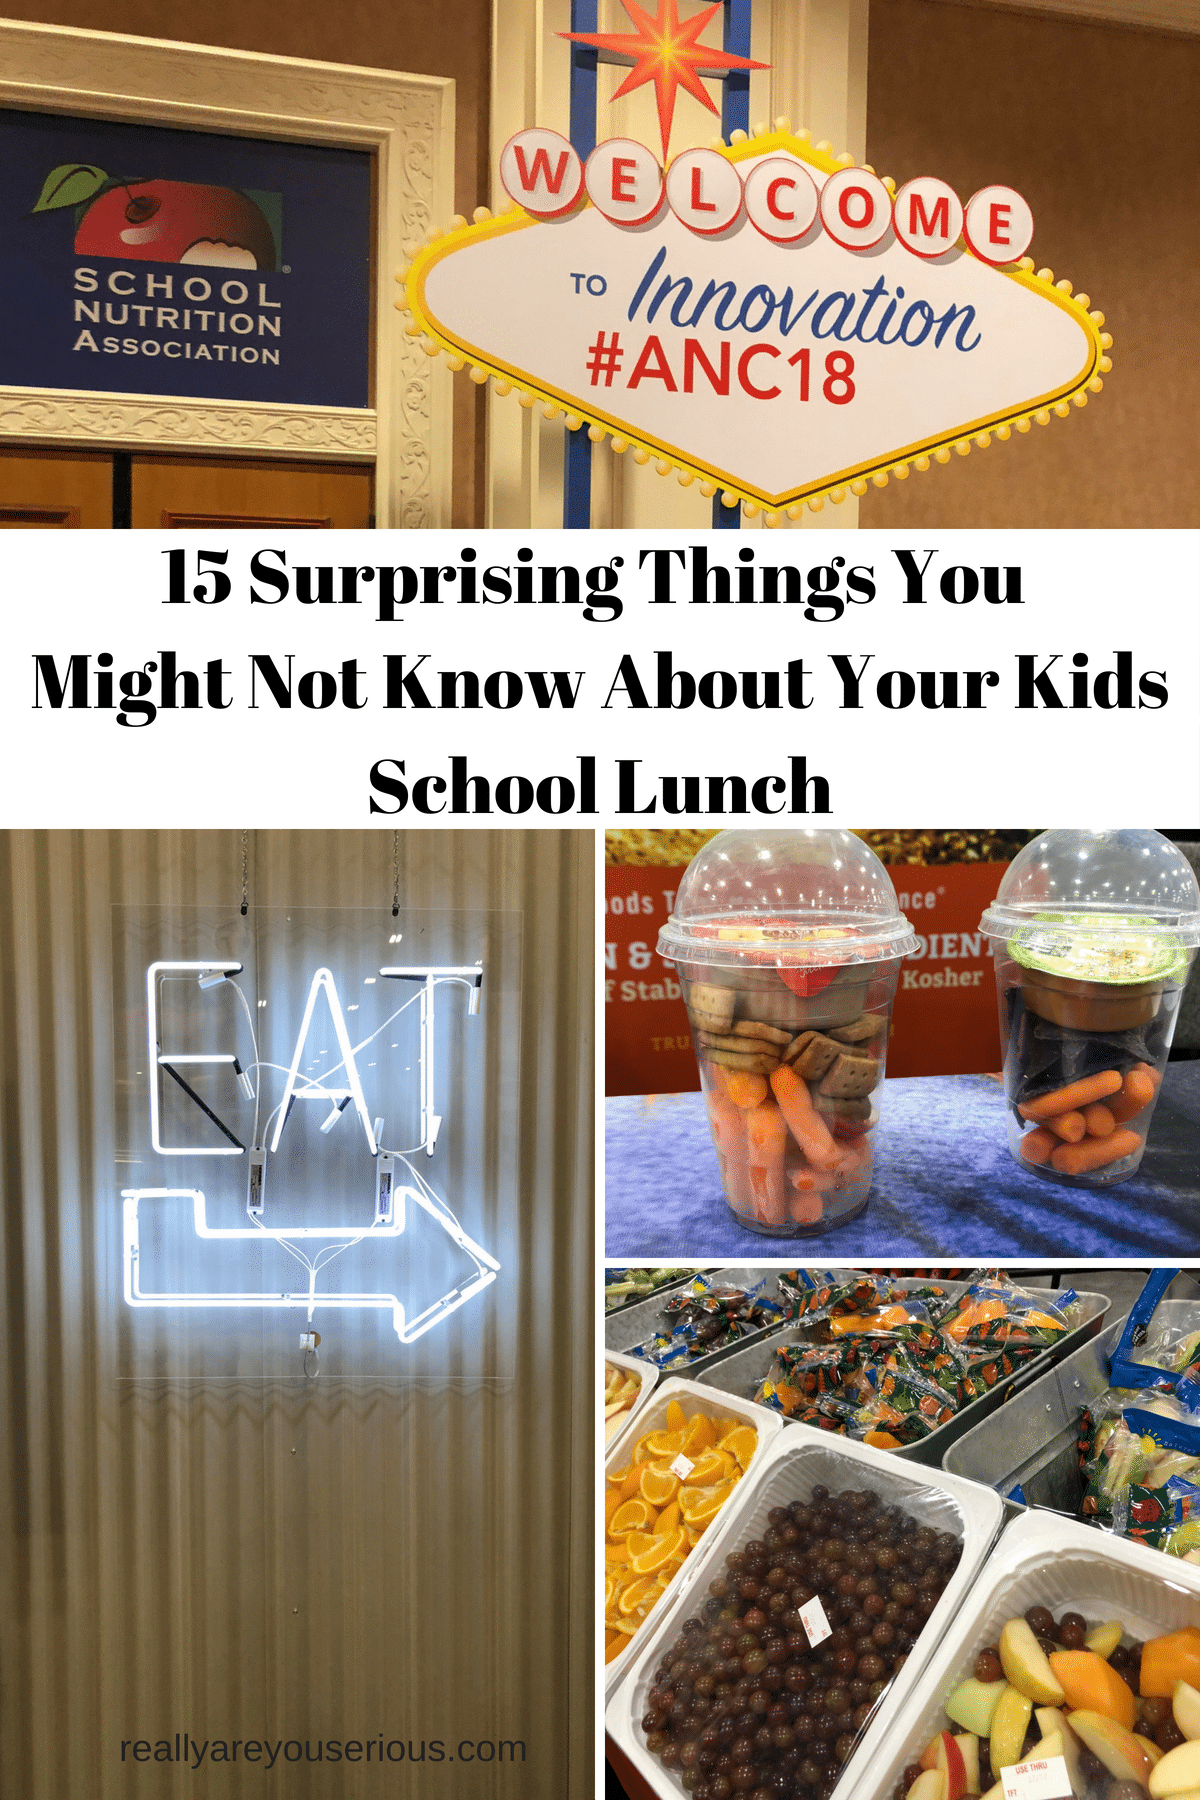 15 surprising things you might not know about your kids school lunch